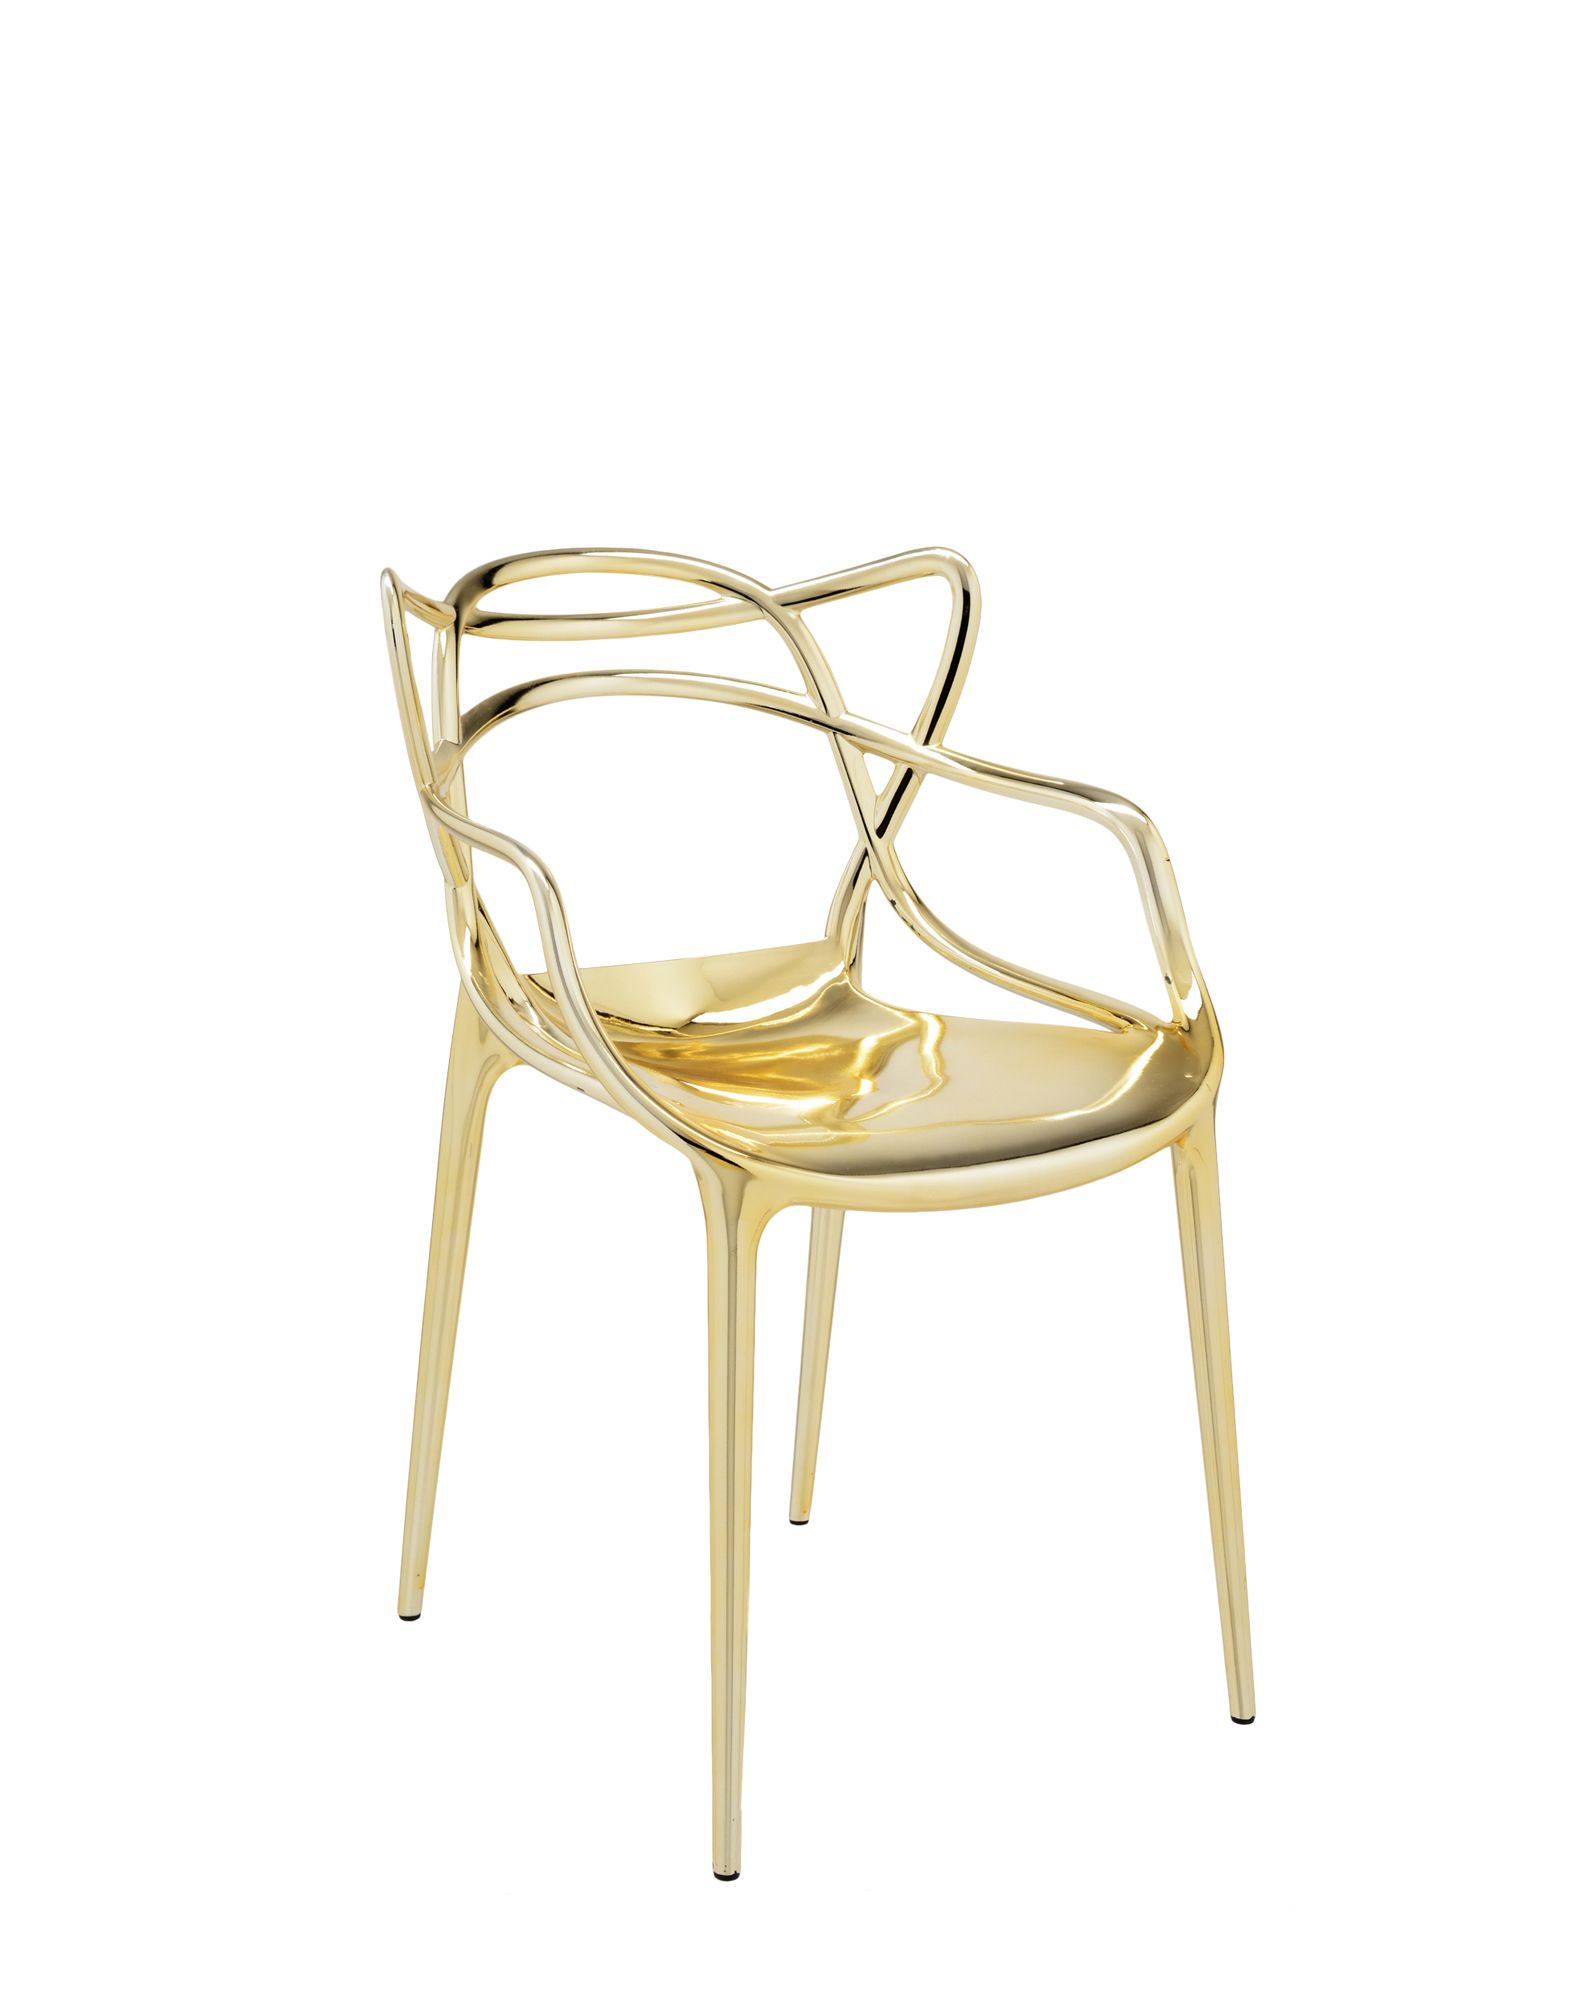 Kartell Chair Masters Gold Kartell Chair Masters Gold ...